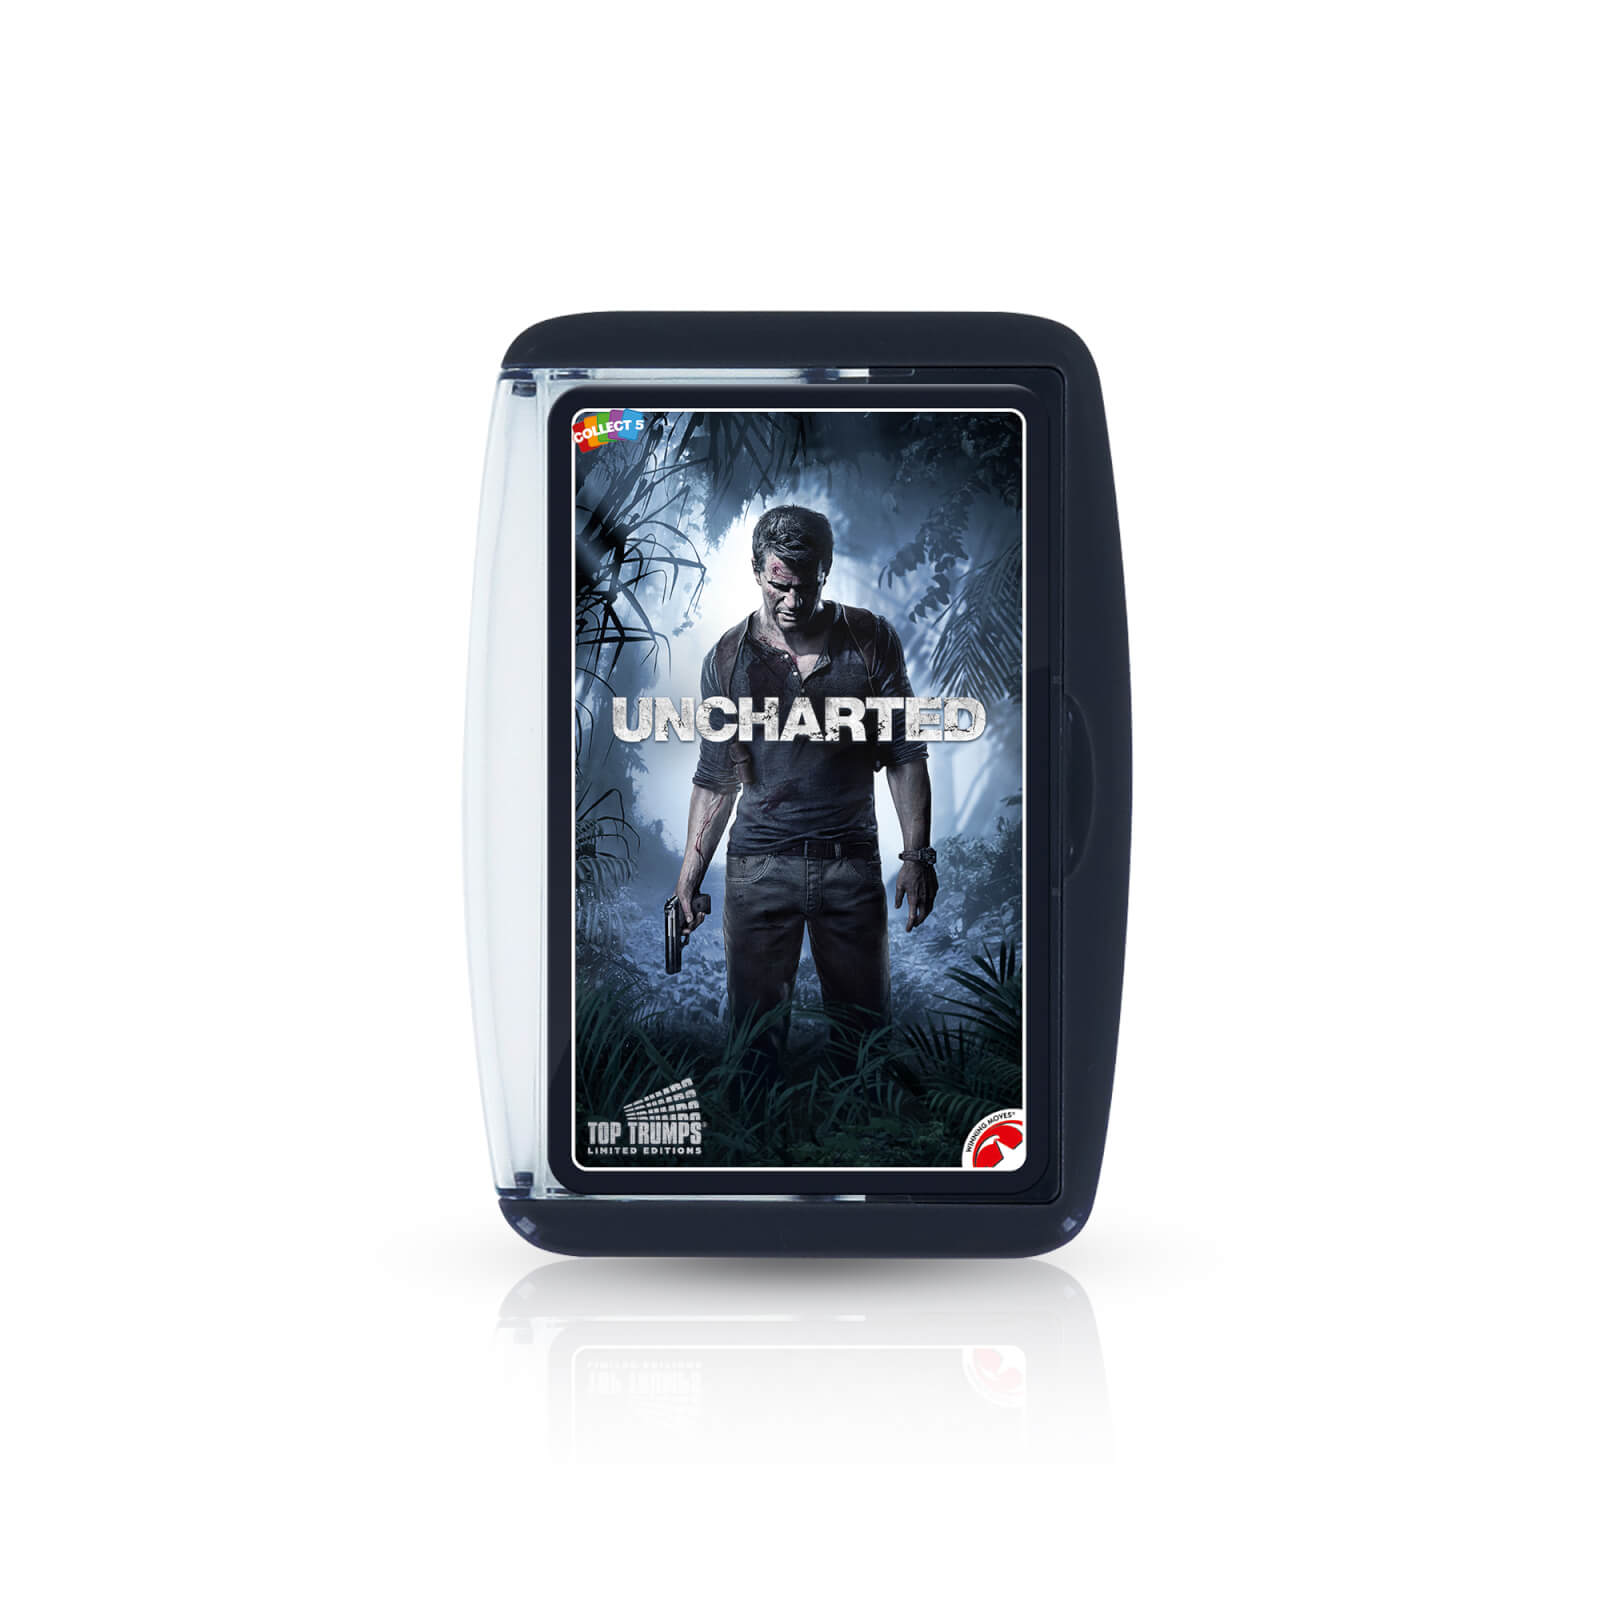 Image of Top Trumps Card Game - Uncharted Edition